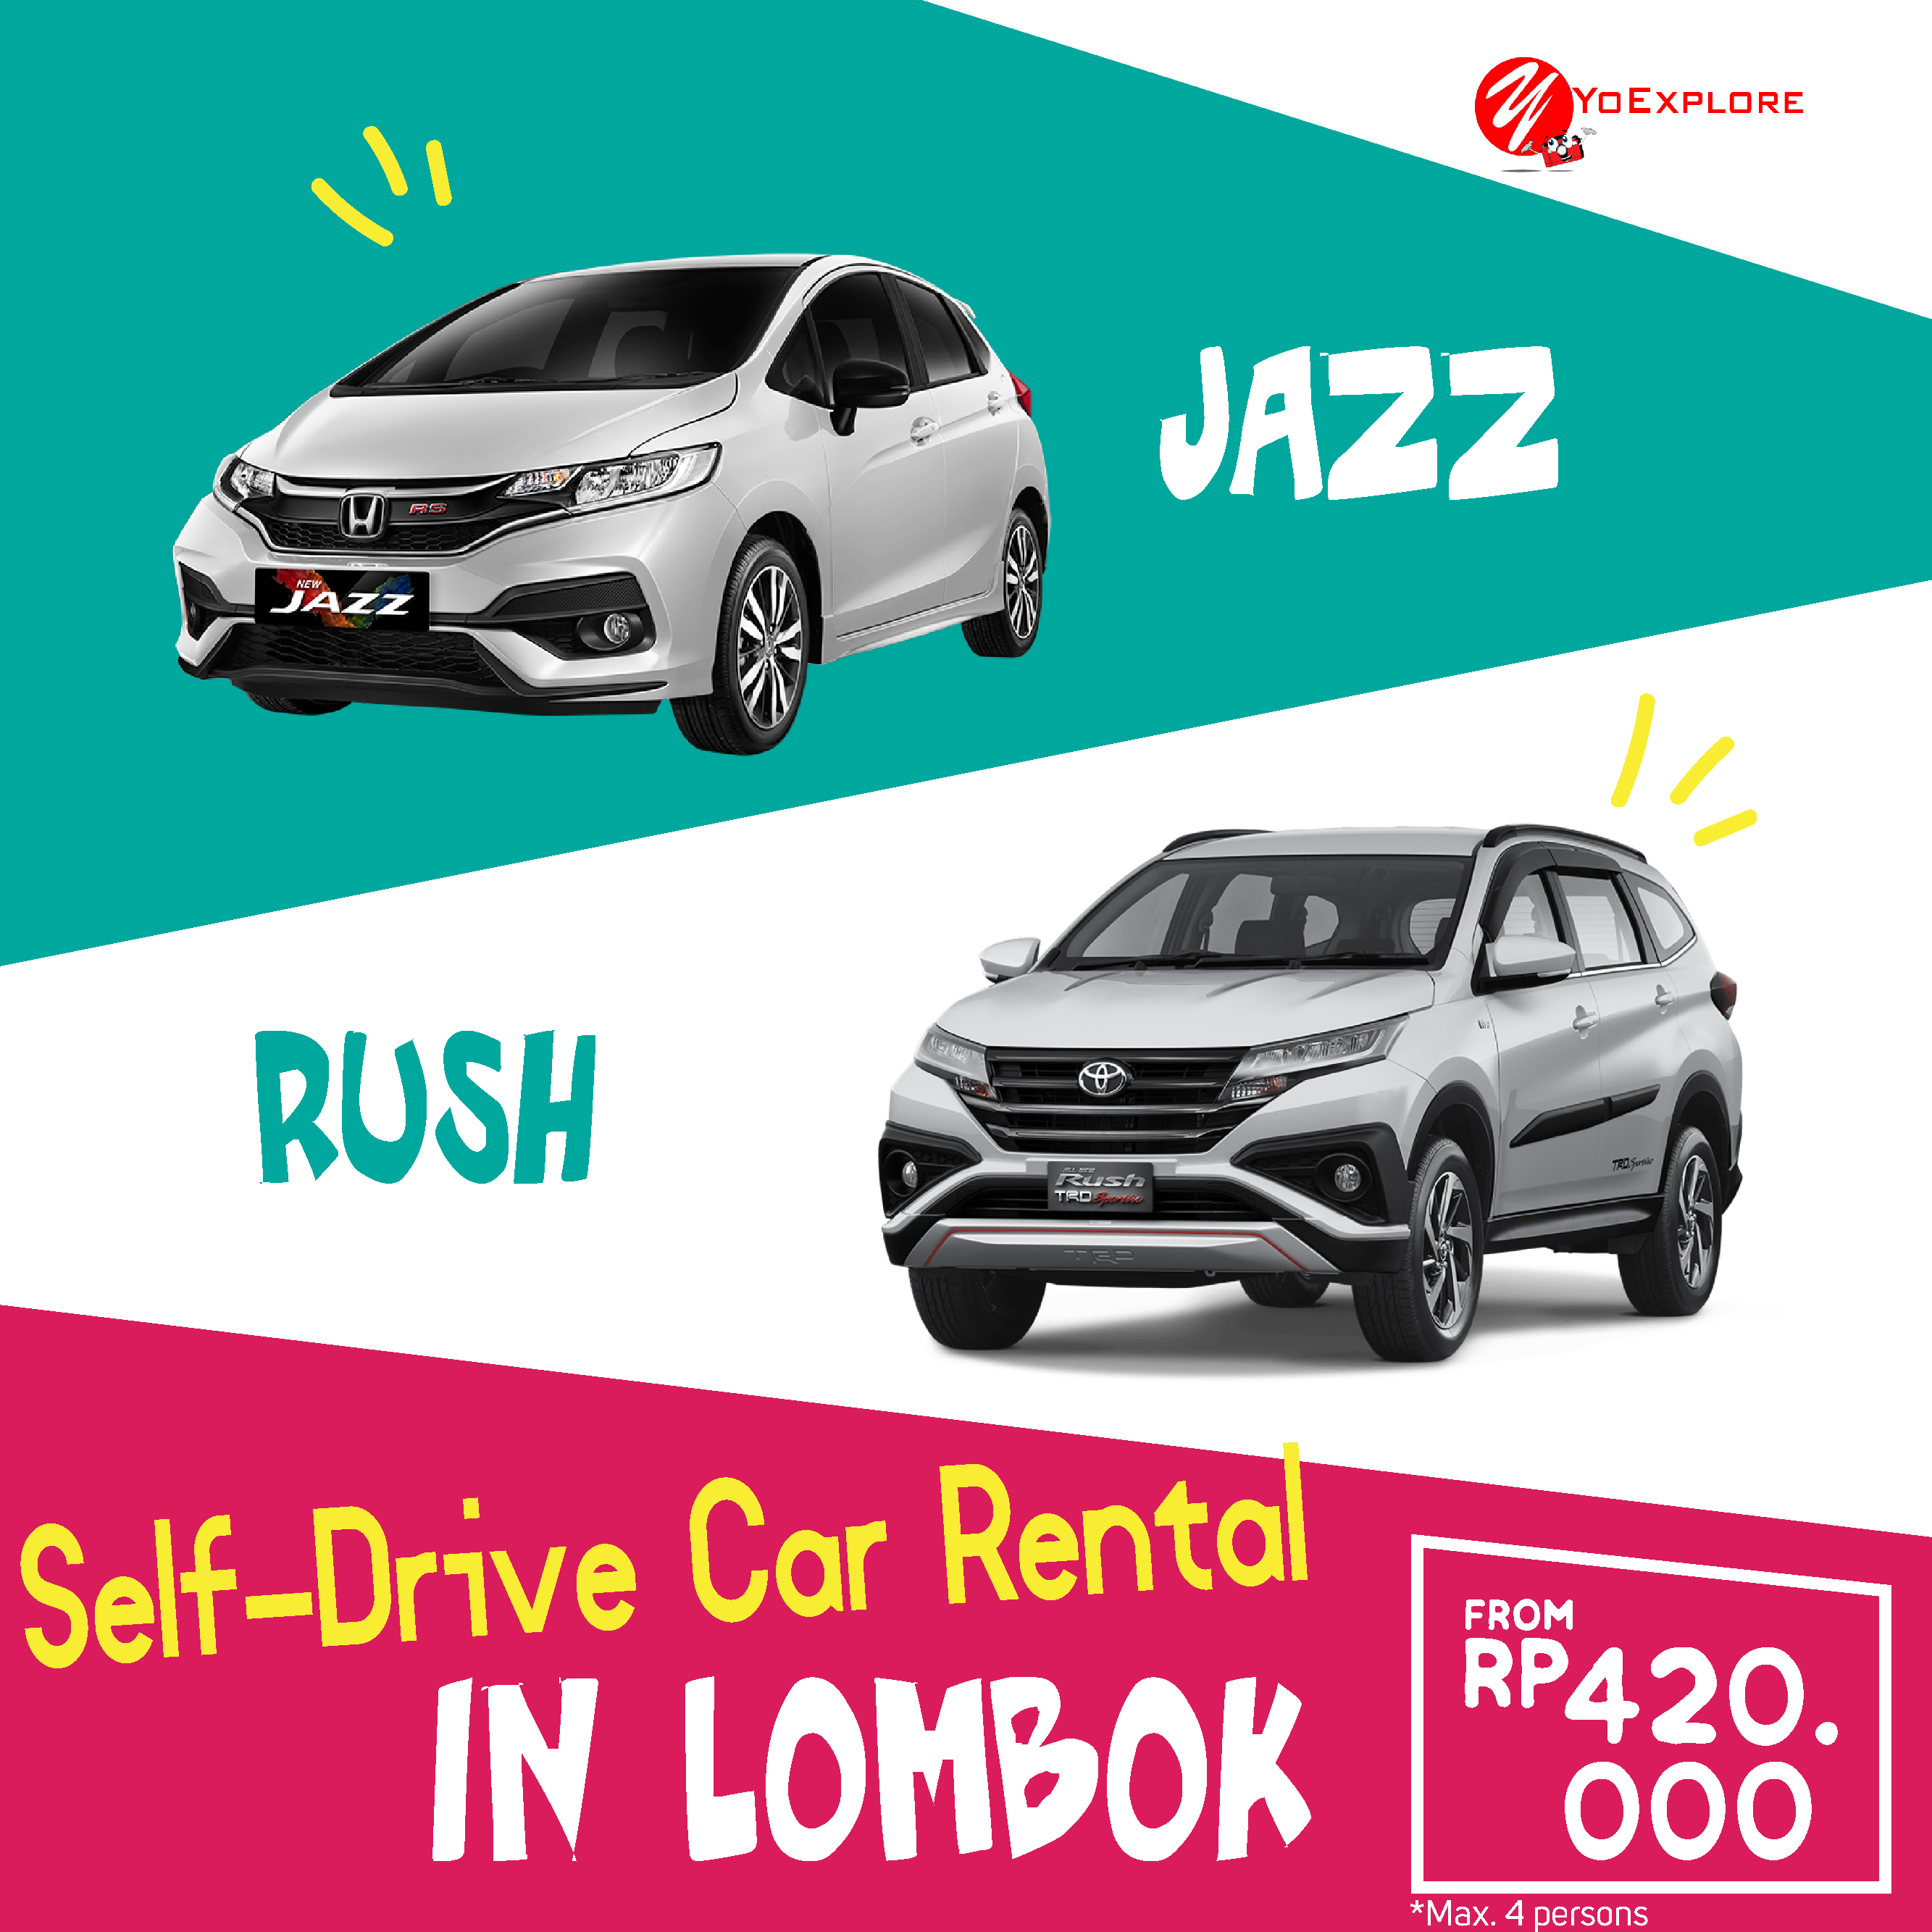 Self-Drive-Car-Rental-Lombok-05-2